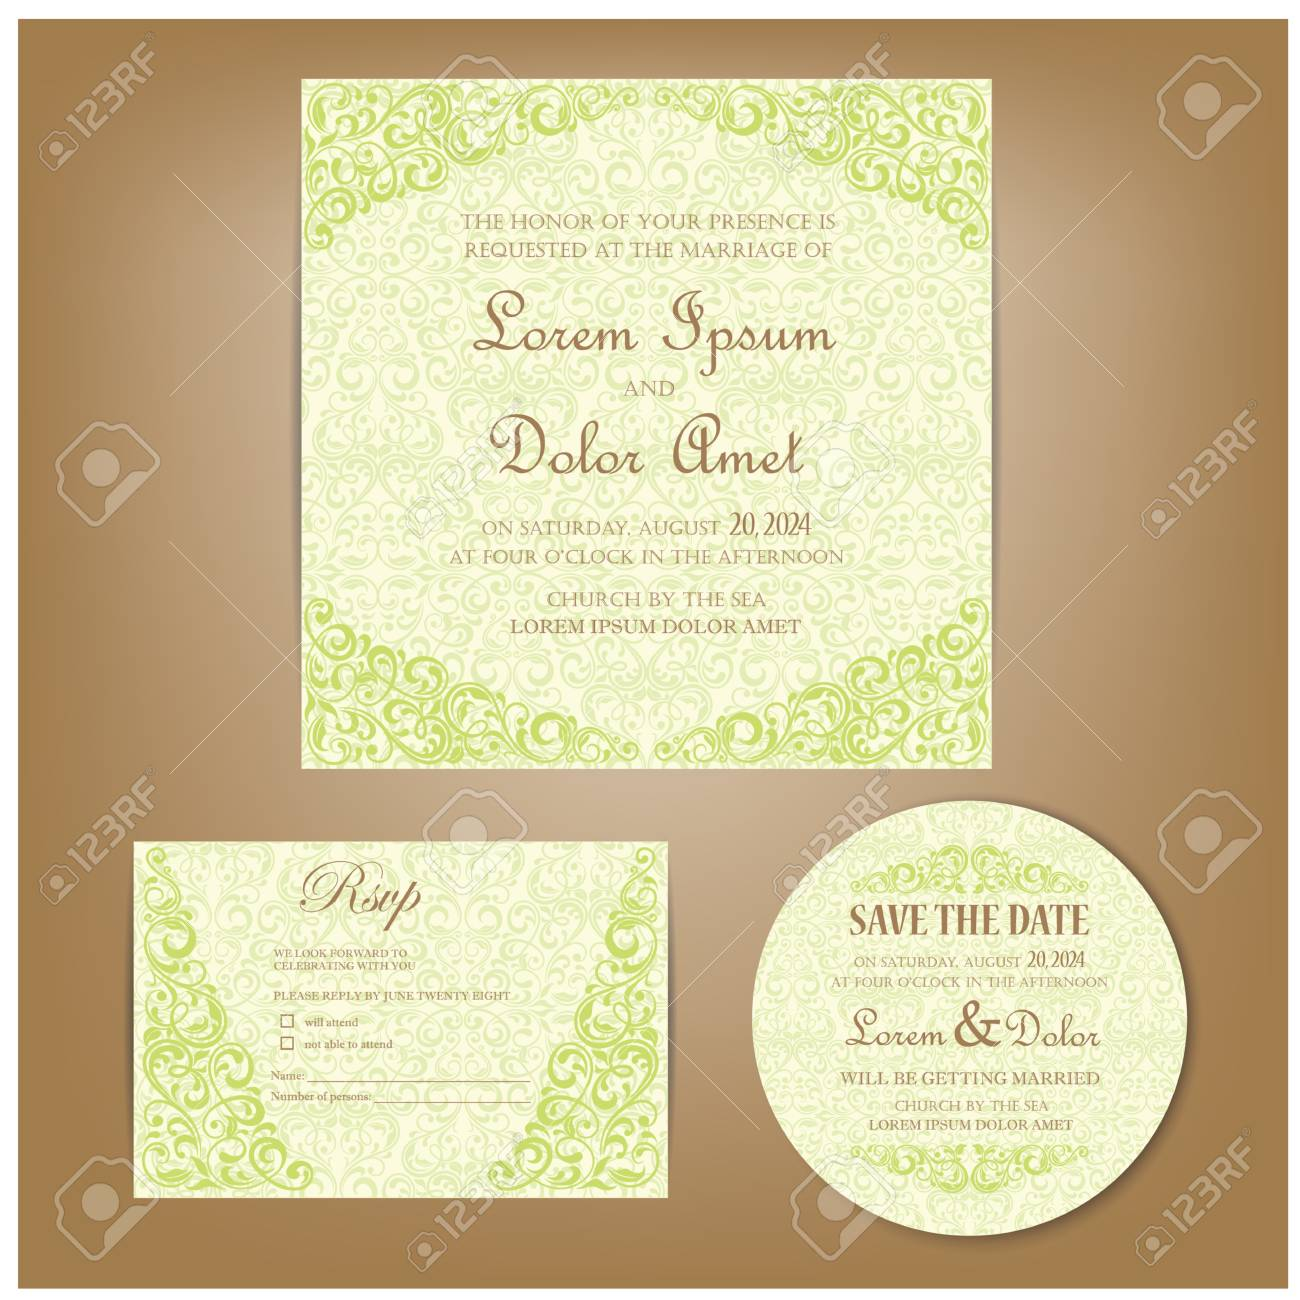 set of vintage wedding invitation cards or announcements invitation